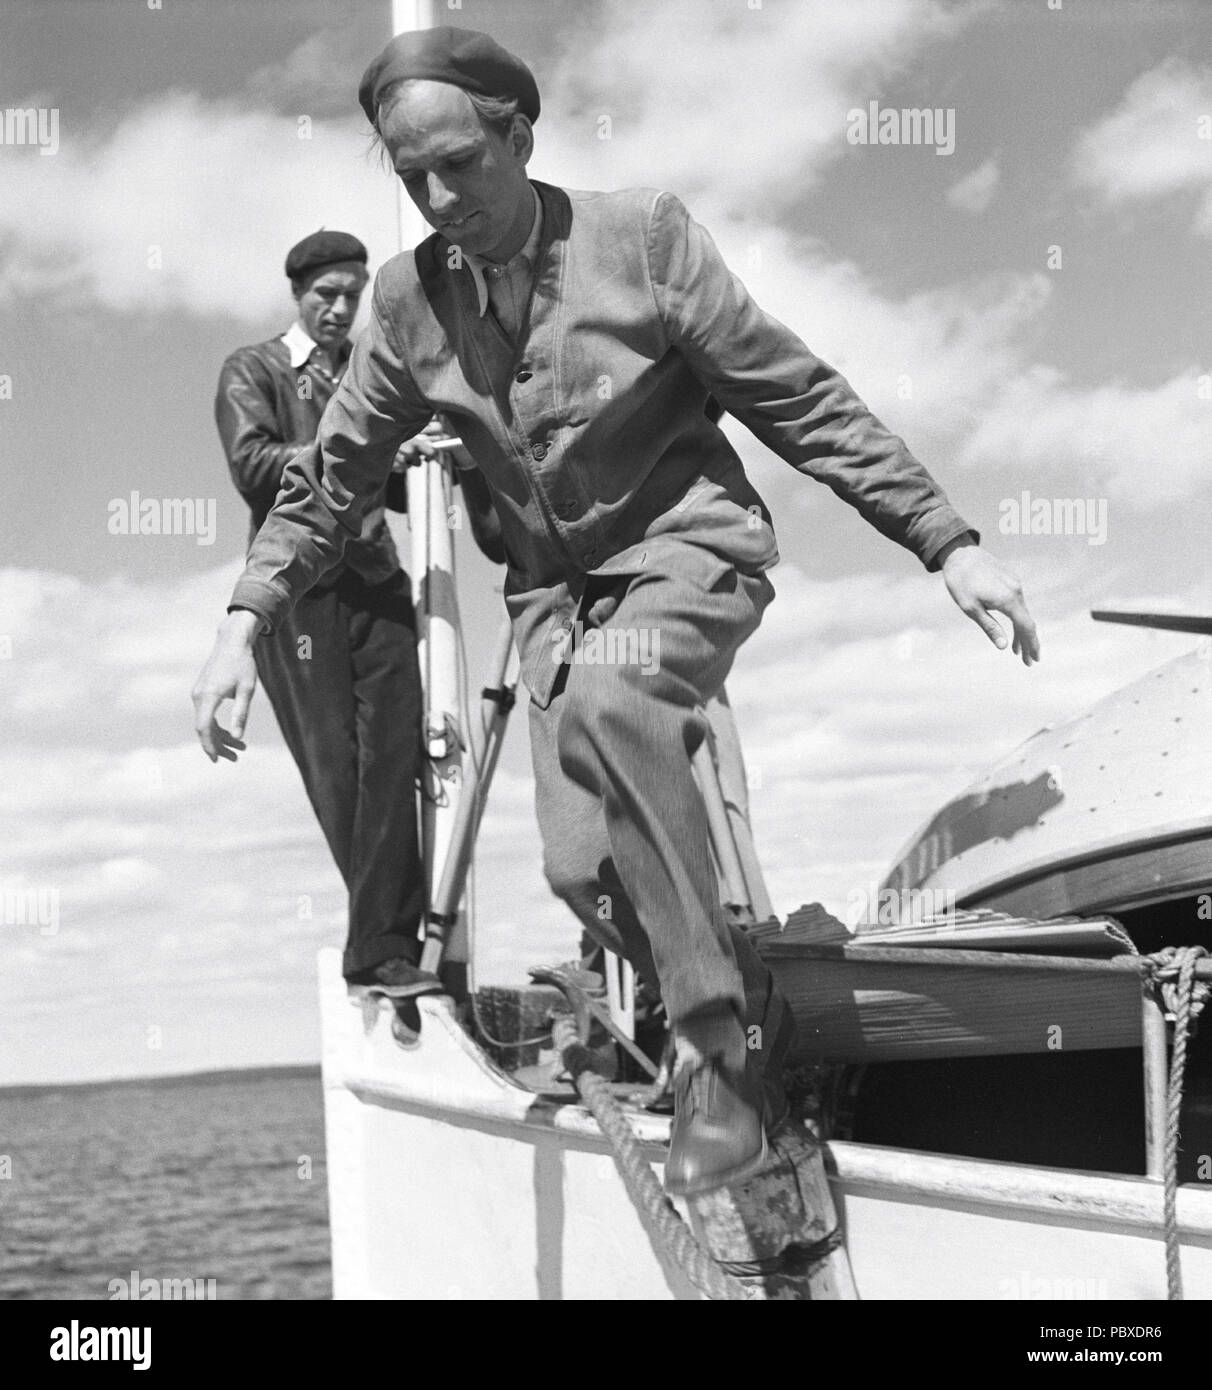 Ingmar Bergman. 1918-2007.  Swedish film director. Pictured here 1950 on the film set of the movie Summer Interlude. The film had premiere 1951. Photographer: Kristoffersson/AZ32-10 - Stock Image